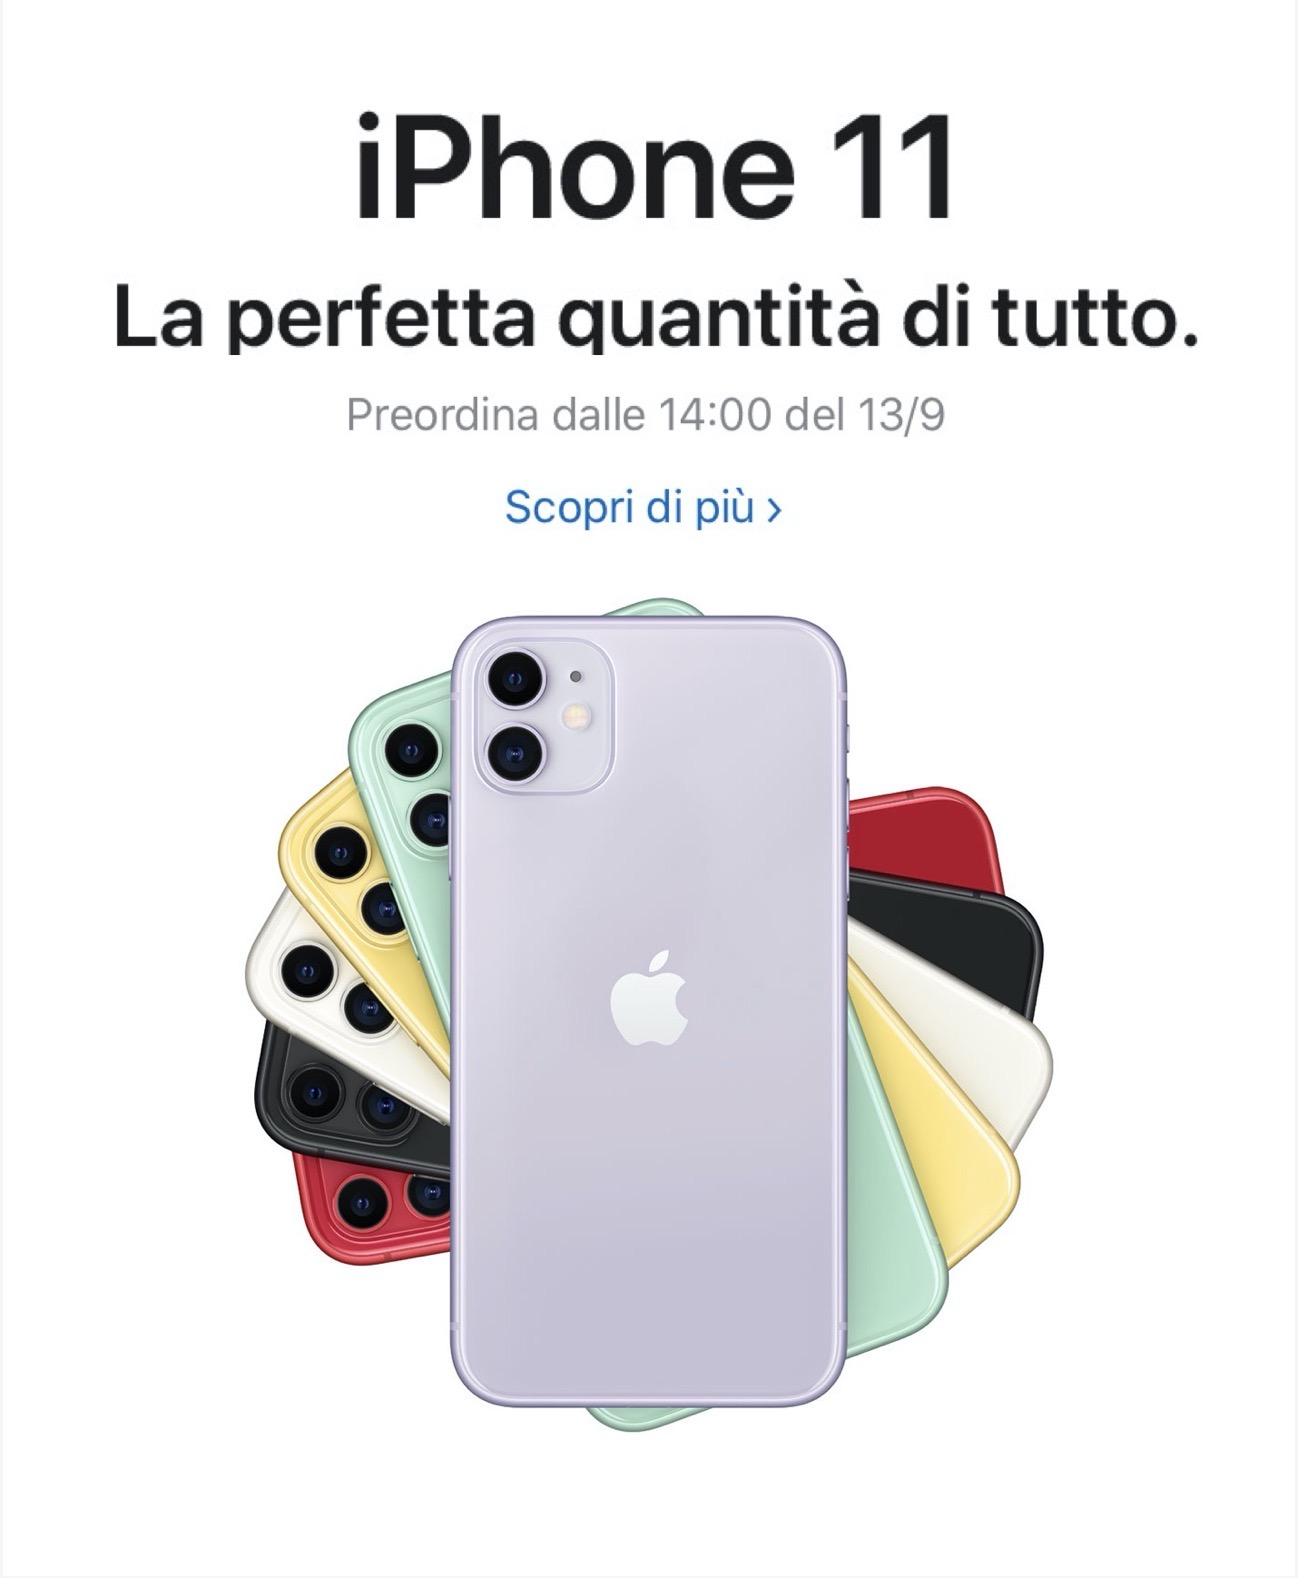 Iphone 11 banner